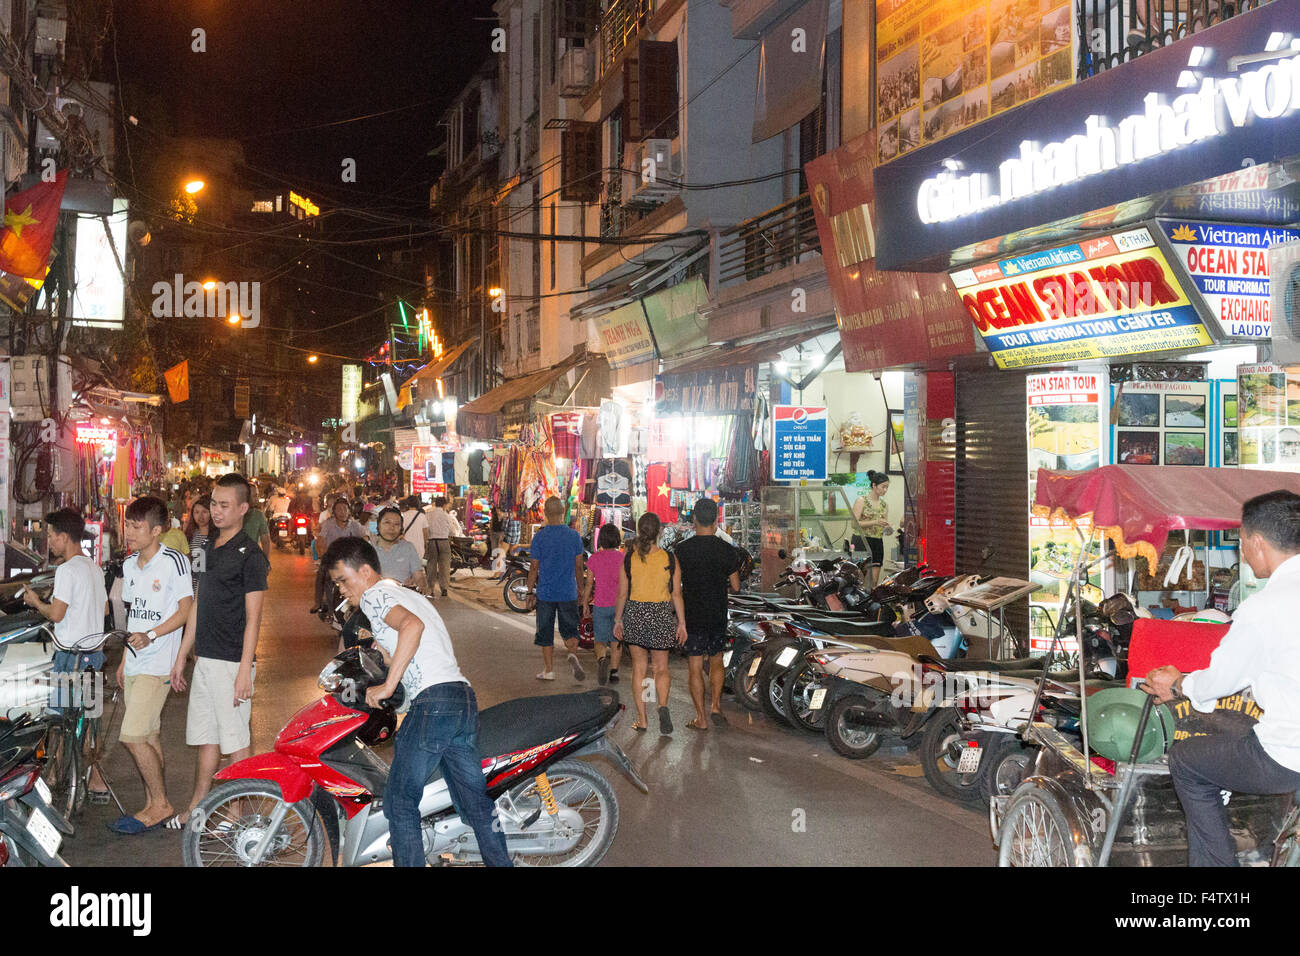 packed and busy streets of Hanoi old quarter in the city centre, favourite spot for locals and tourists each nighttime,Vietnam - Stock Image